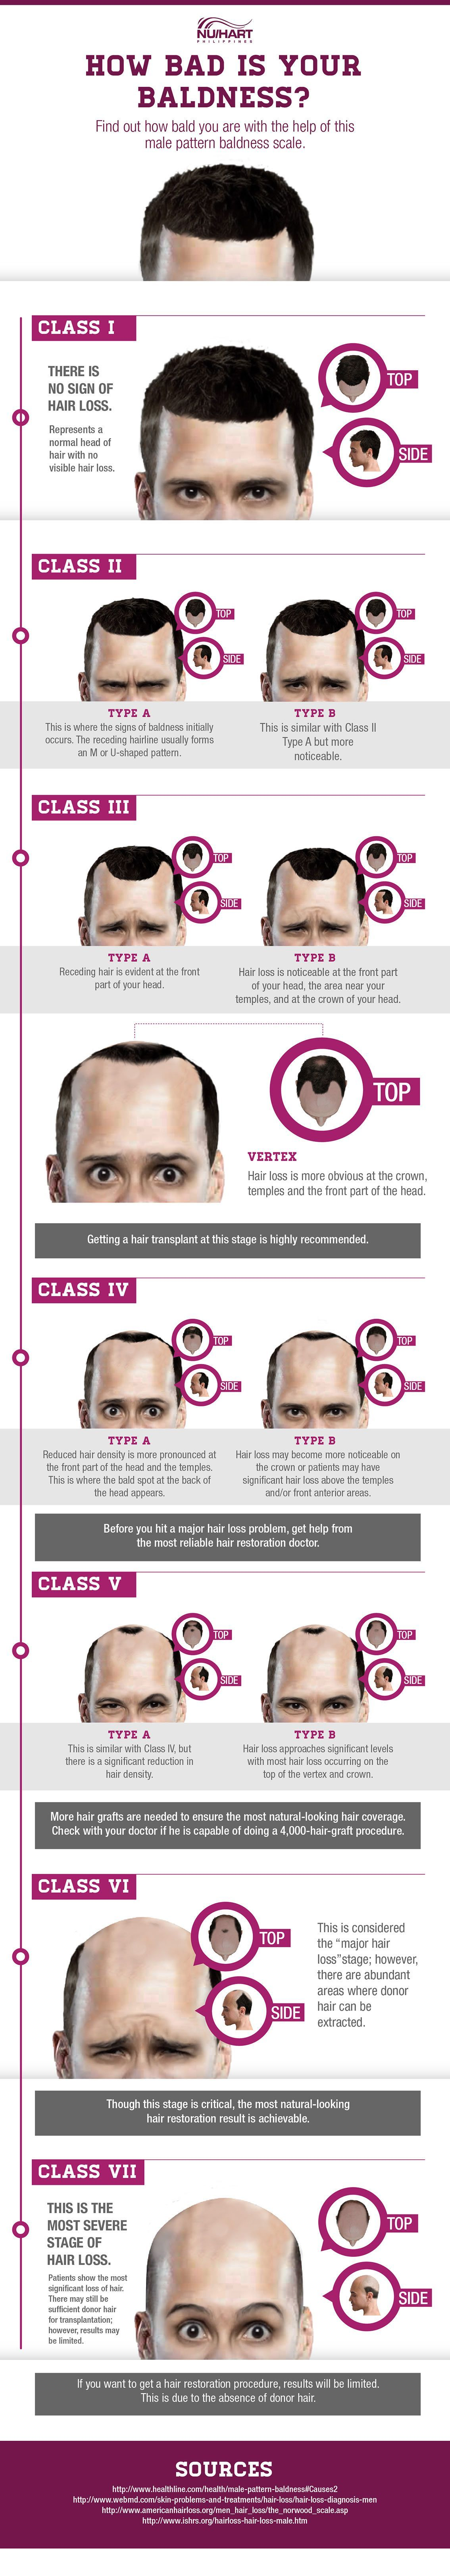 Male Pattern Baldness Stages Best Design Ideas